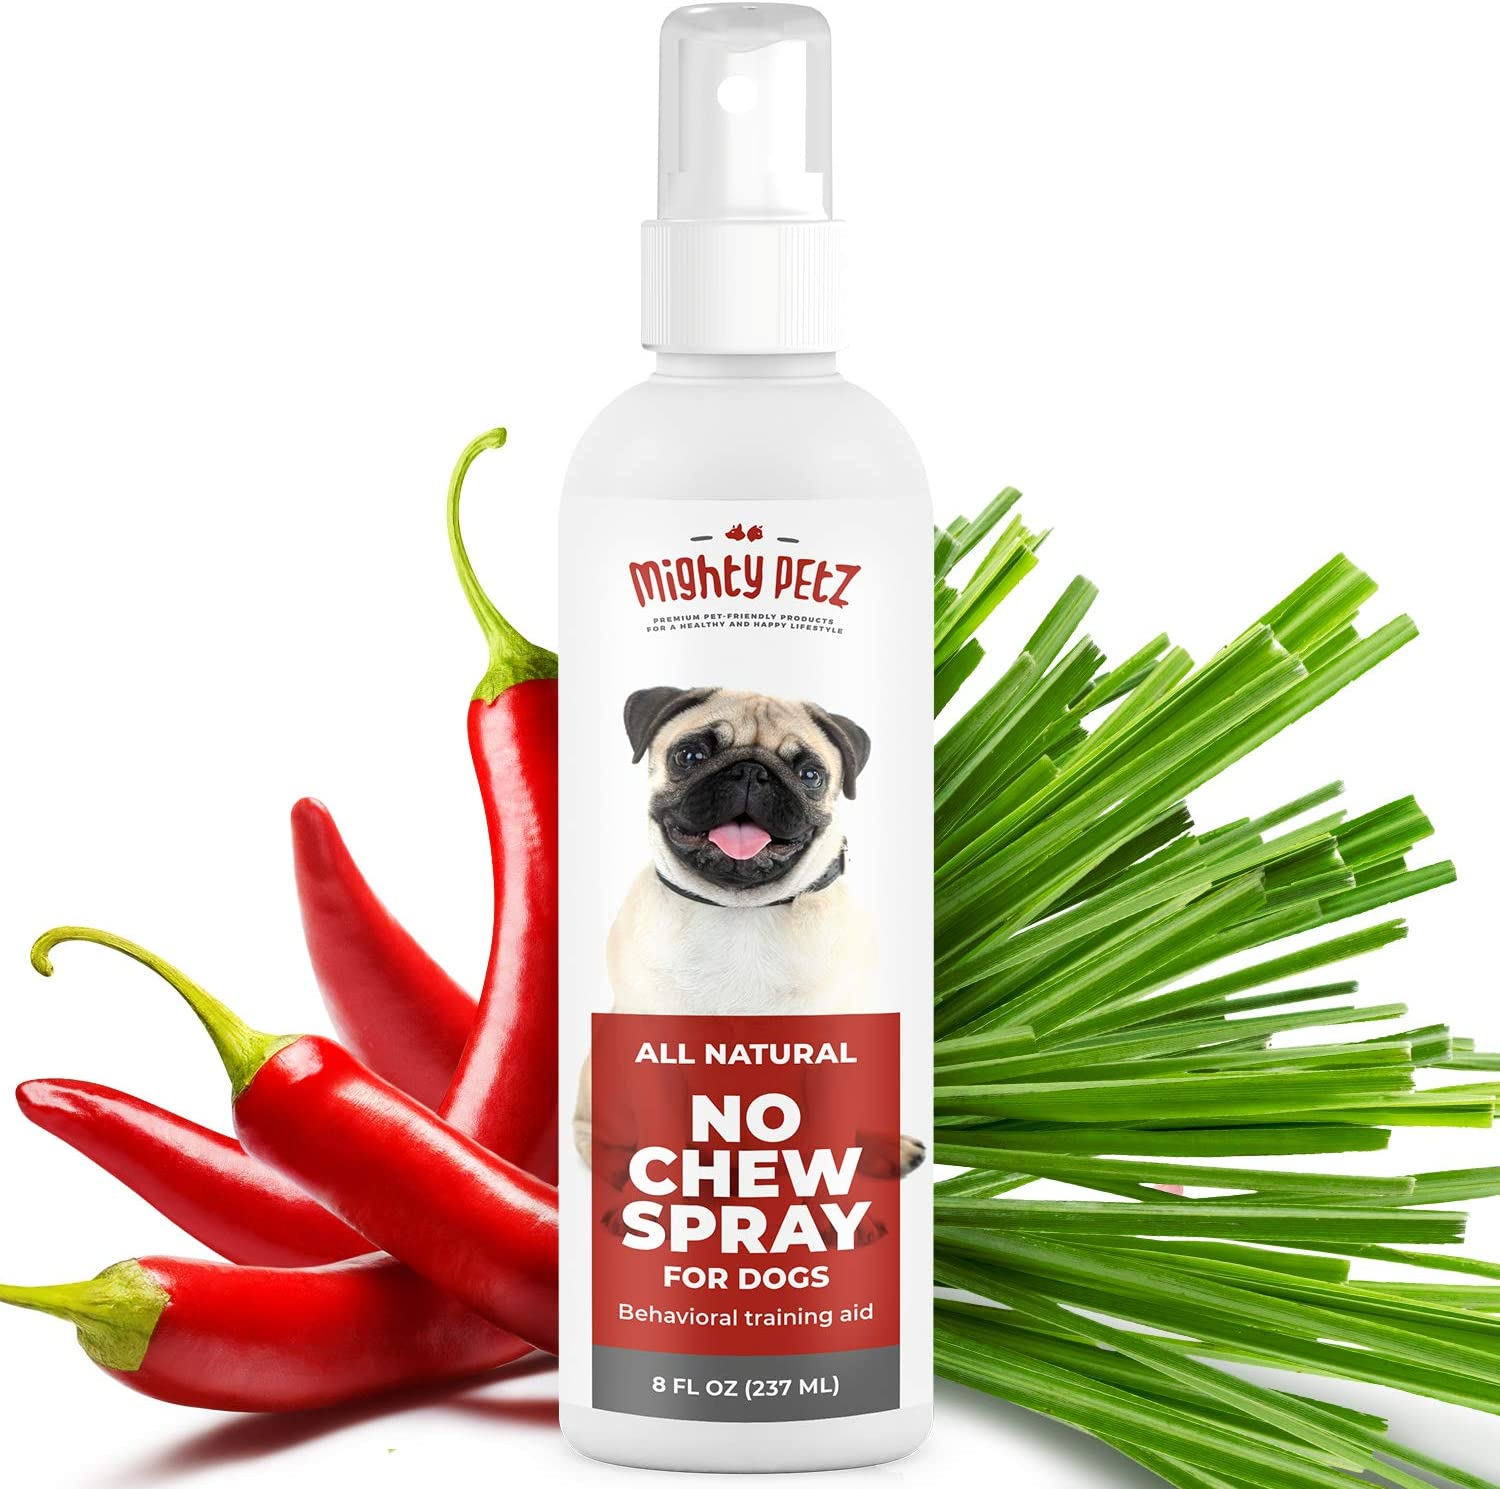 No Chew Spray for Dogs – 100% Natural Dog and Puppy Behavioral Training Aid – Dog Chewing & Biting Repellent – Alcohol Free Anti Chew Deterrent for Puppies and Older Dogs, Safe on All Surfaces, 8 oz